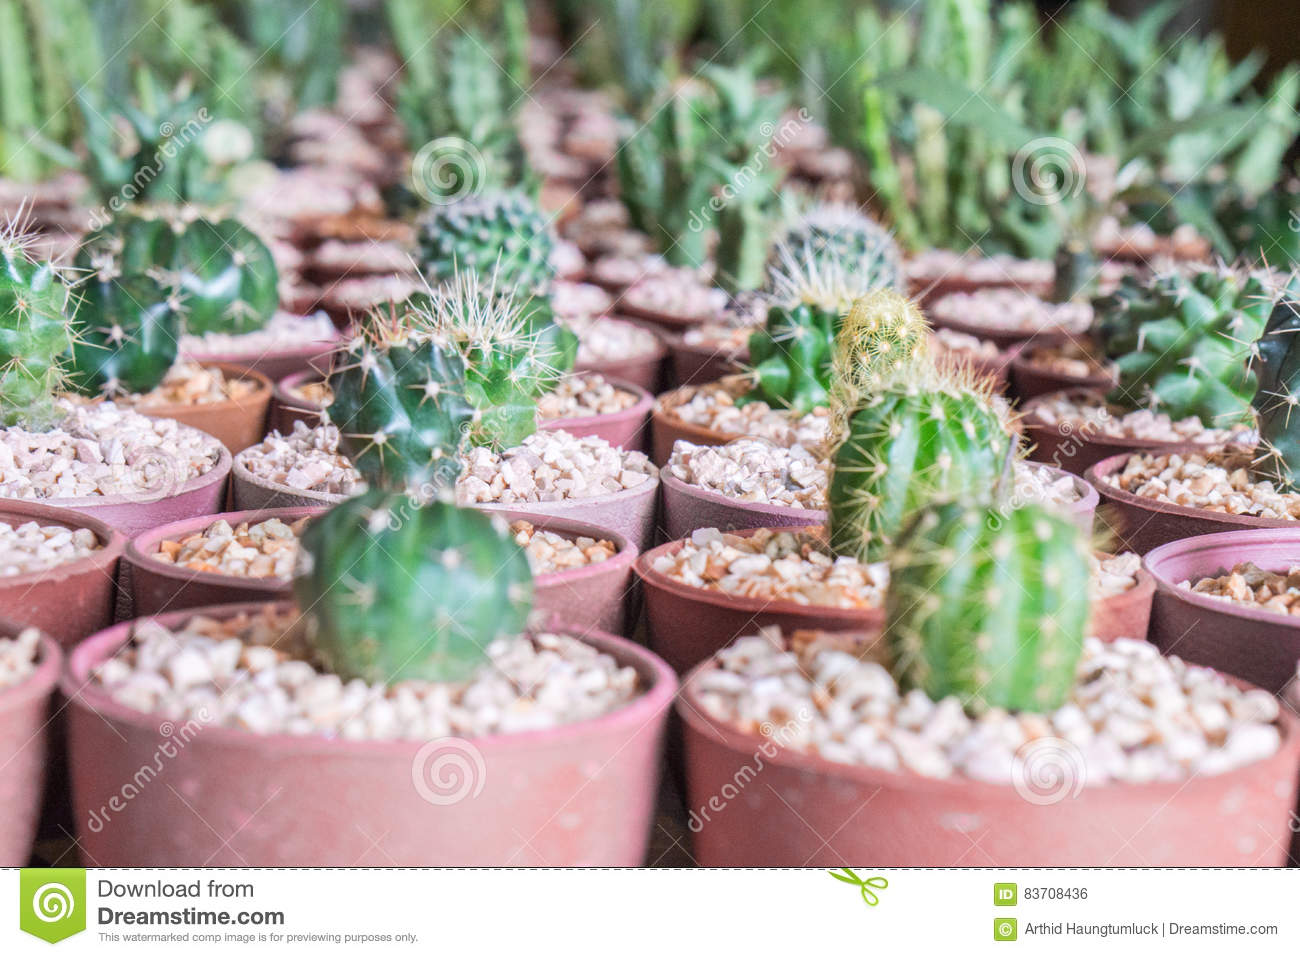 Baby Mixed Cactus Among Other Cactus In A Pot In Cactus Farm Stock Illustration